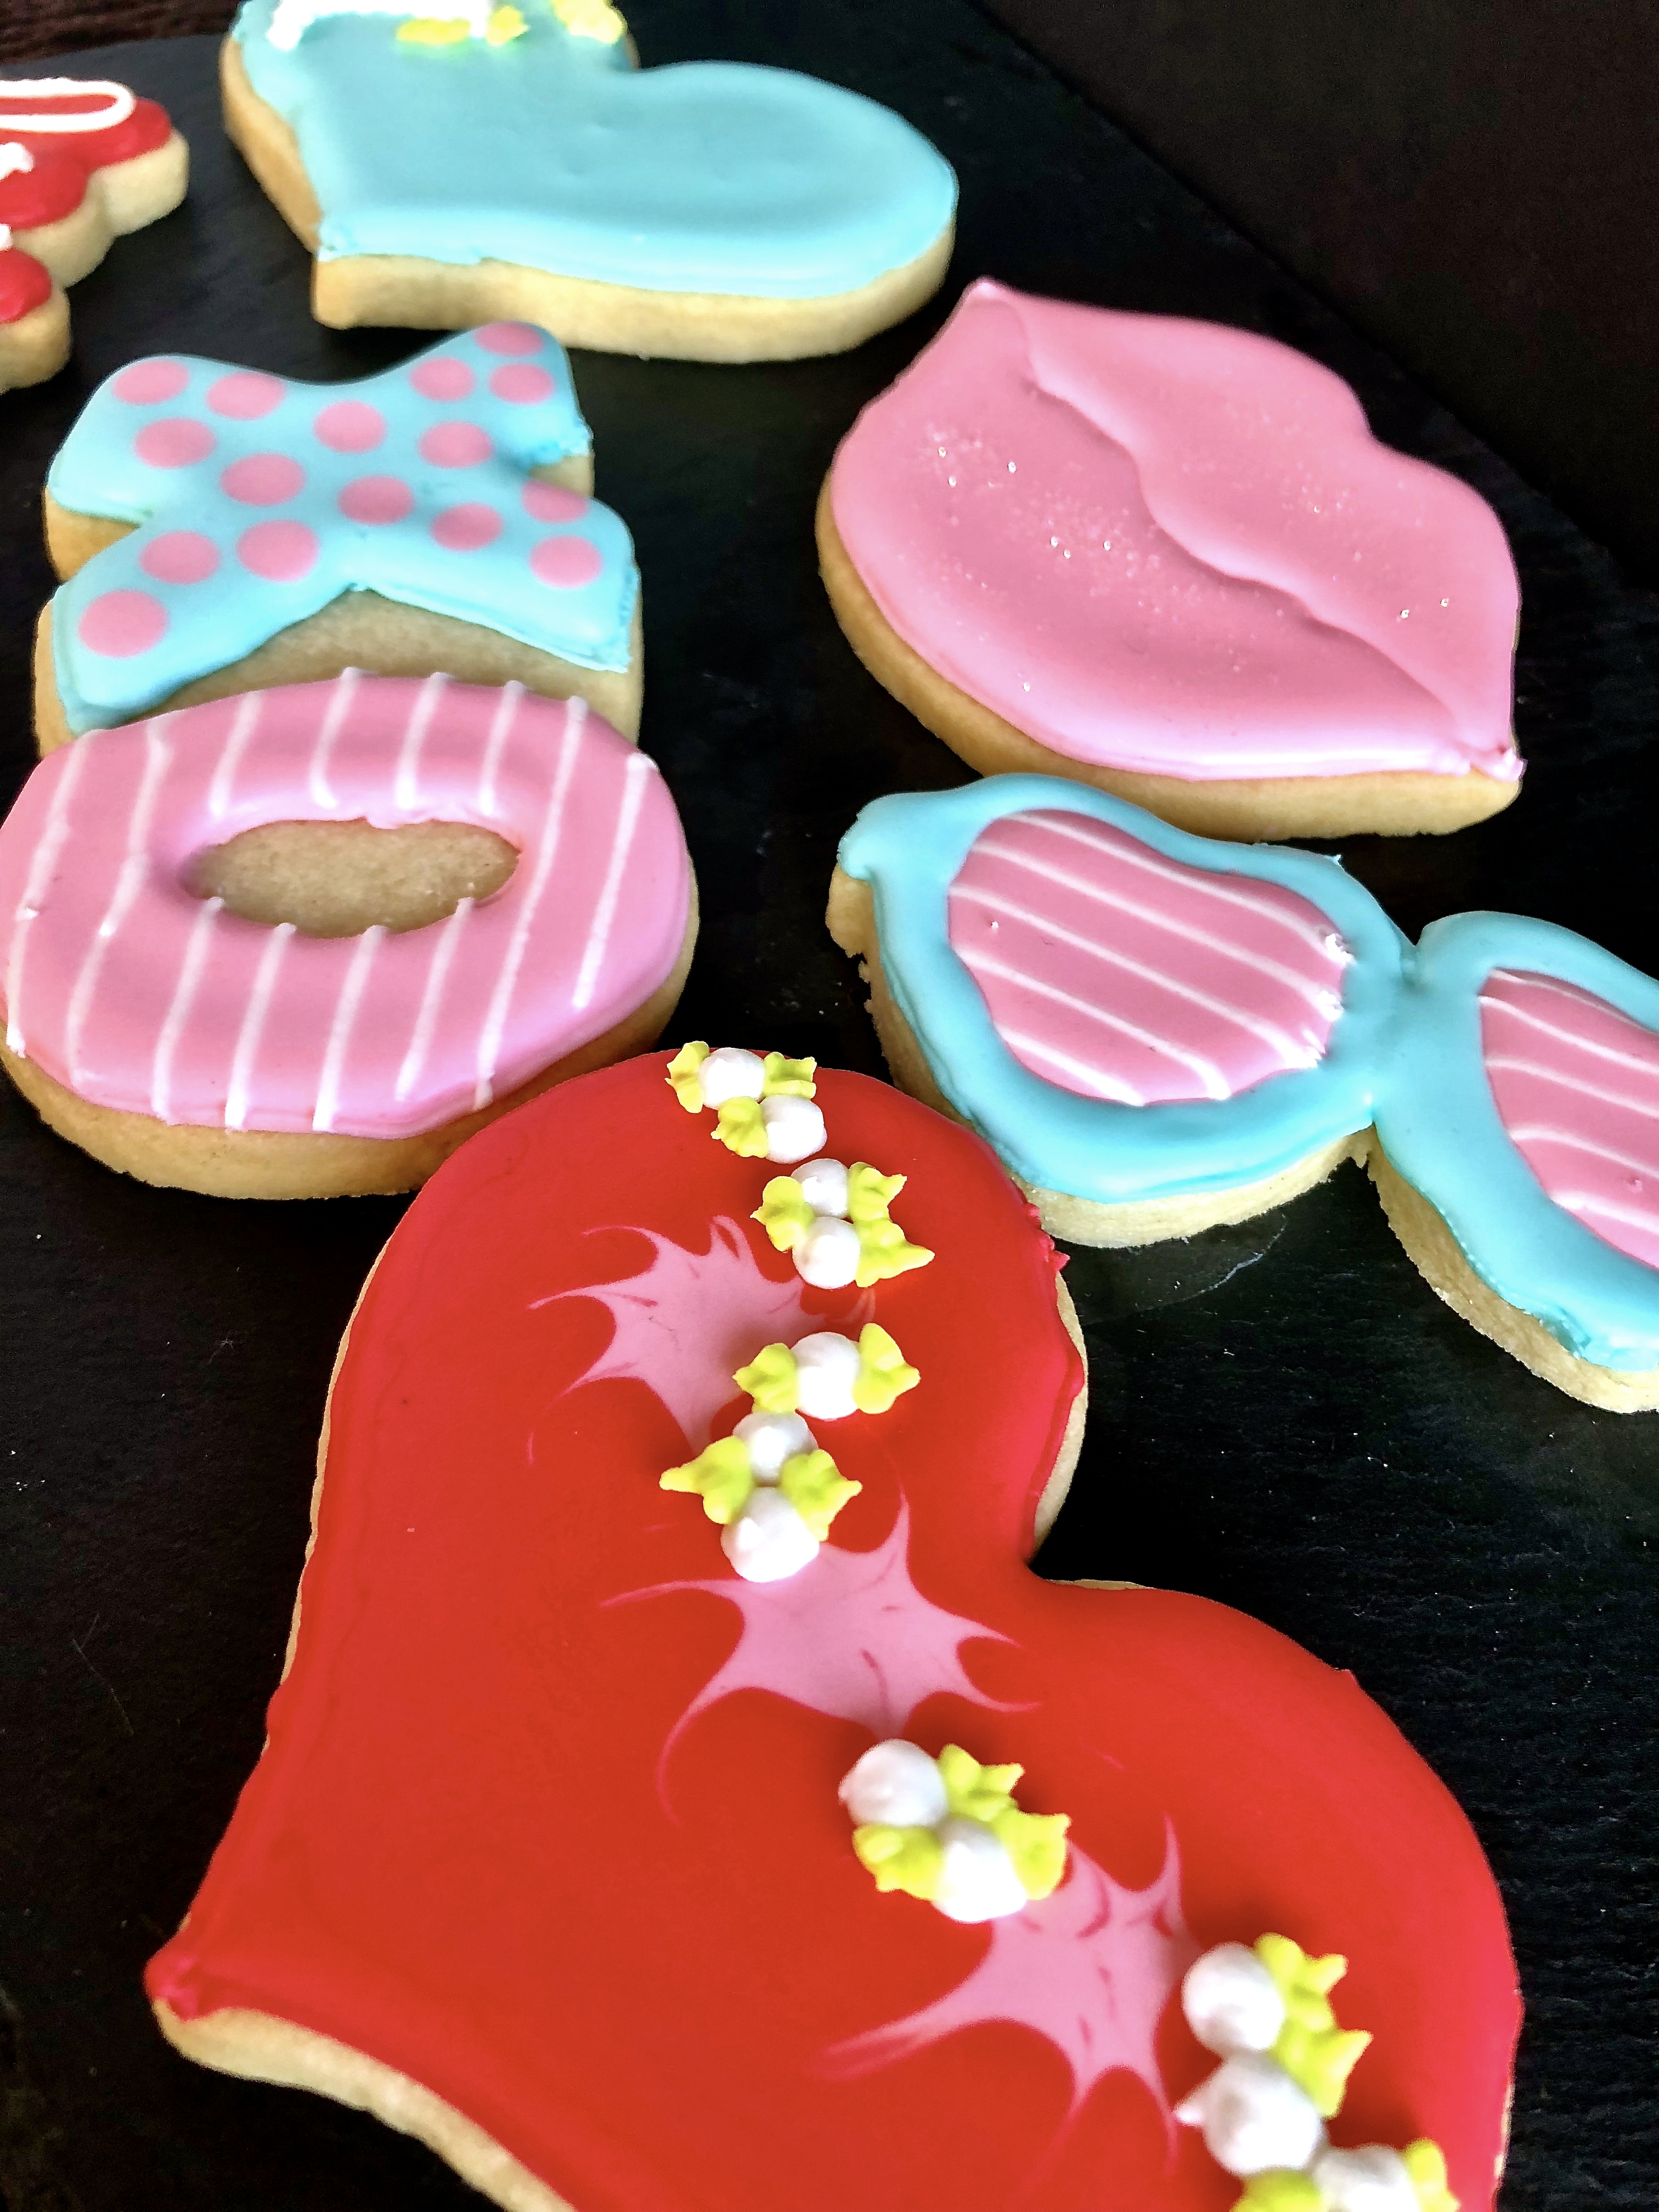 MIY Studio Crafts Co. and Raining Cookies: Women supporting Women!